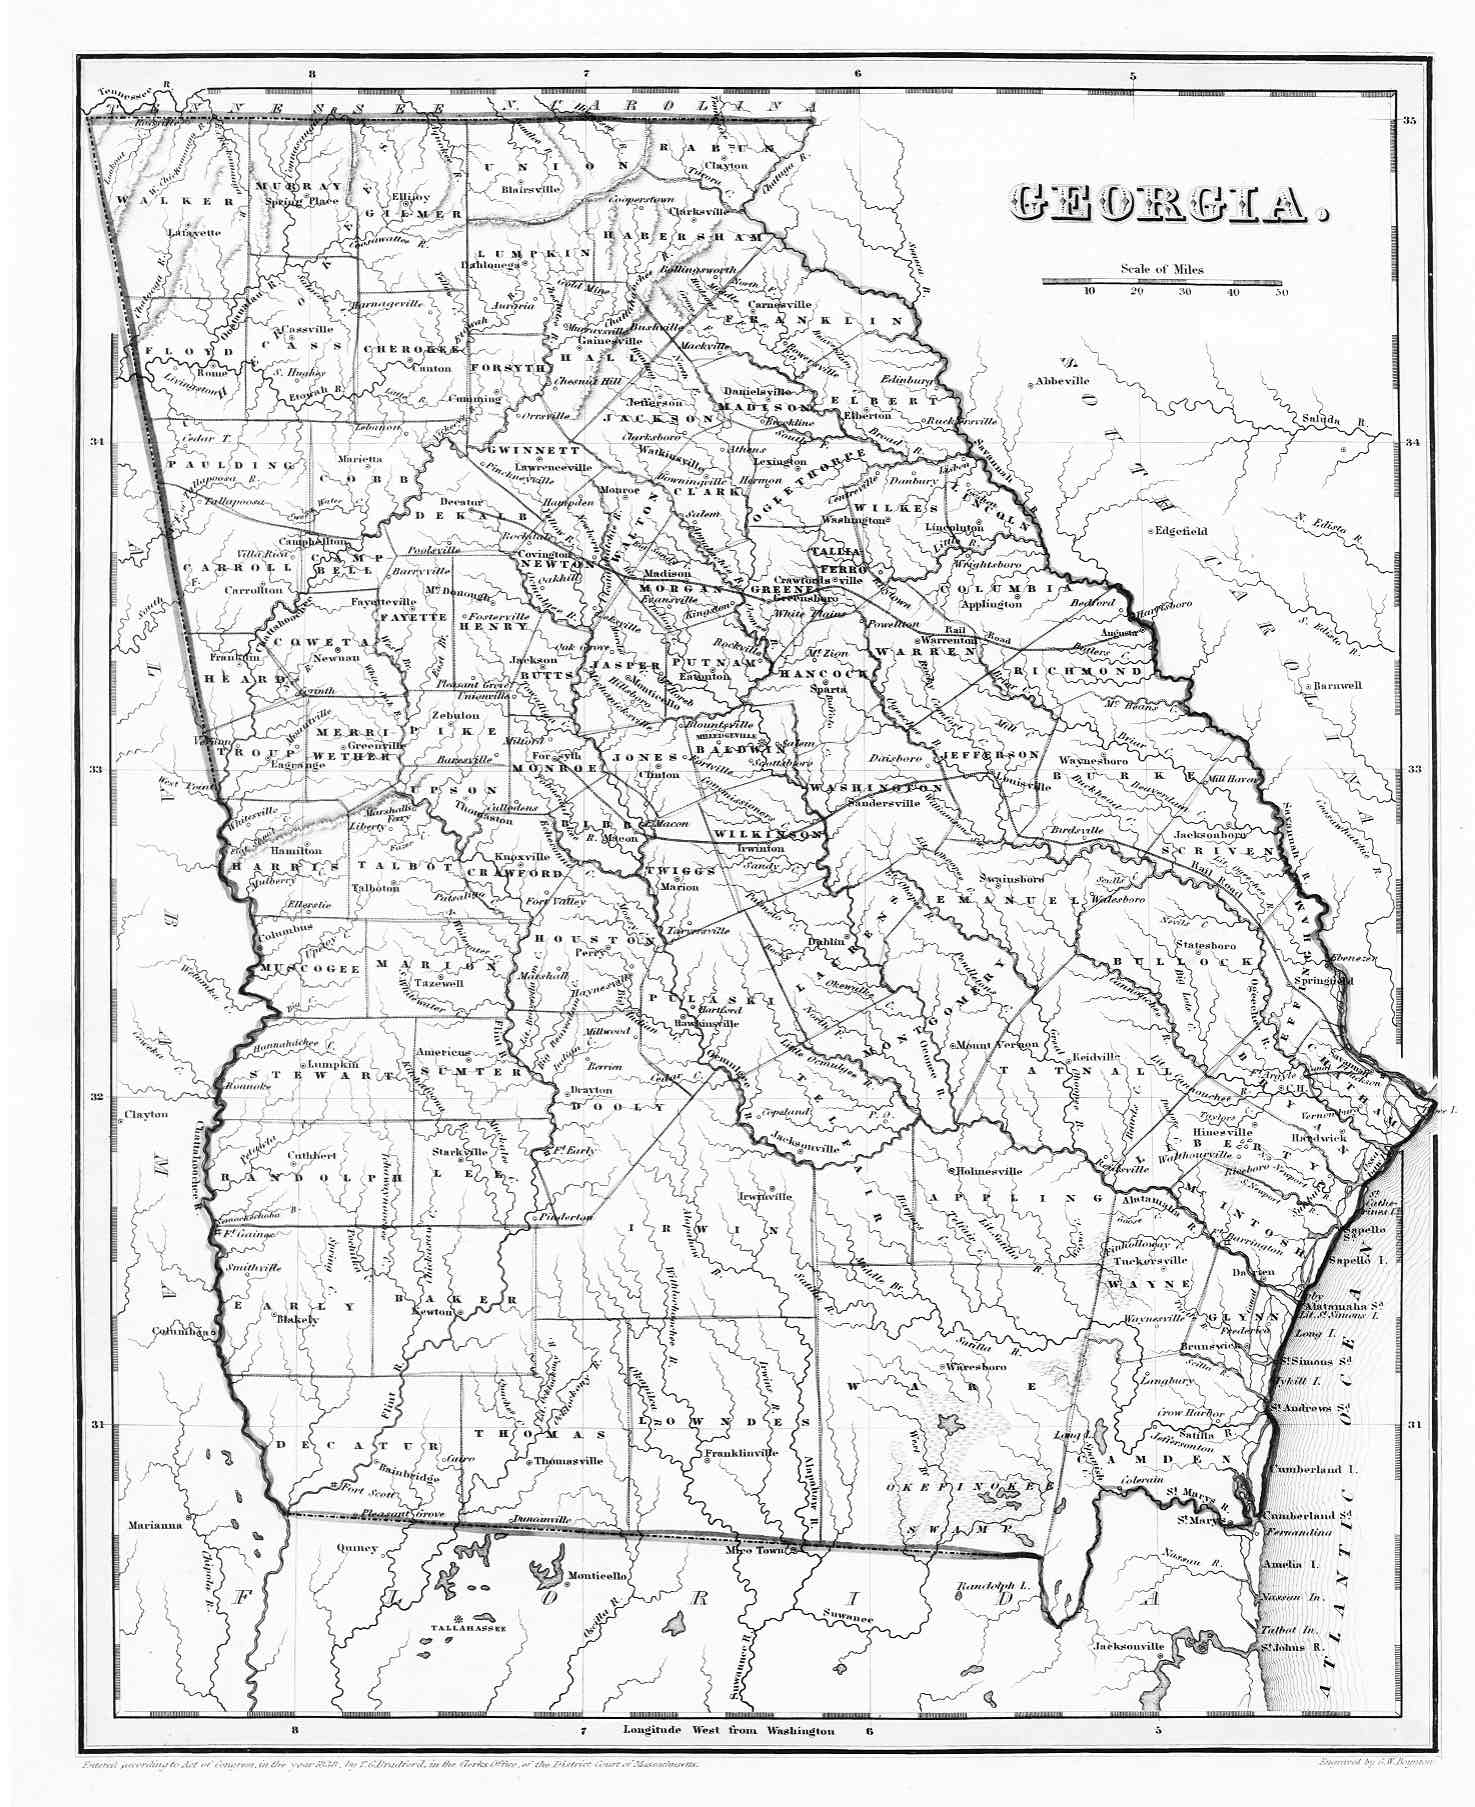 Hargrett Liry Rare Map Collection - Frontier to New South on state of nd, state of ky, city of atlanta map, state of jefferson counties, state of tennessee rivers, state of massachusetts, georgia state highway map, state of philadelphia, state of arizona flag, state of ma, texas state map, state florida map, united states map, state of michigan townships, metropolitan atlanta rapid transit authority map, state of rhode island, tennessee state map, state of north carolina, state of pennsylvania,